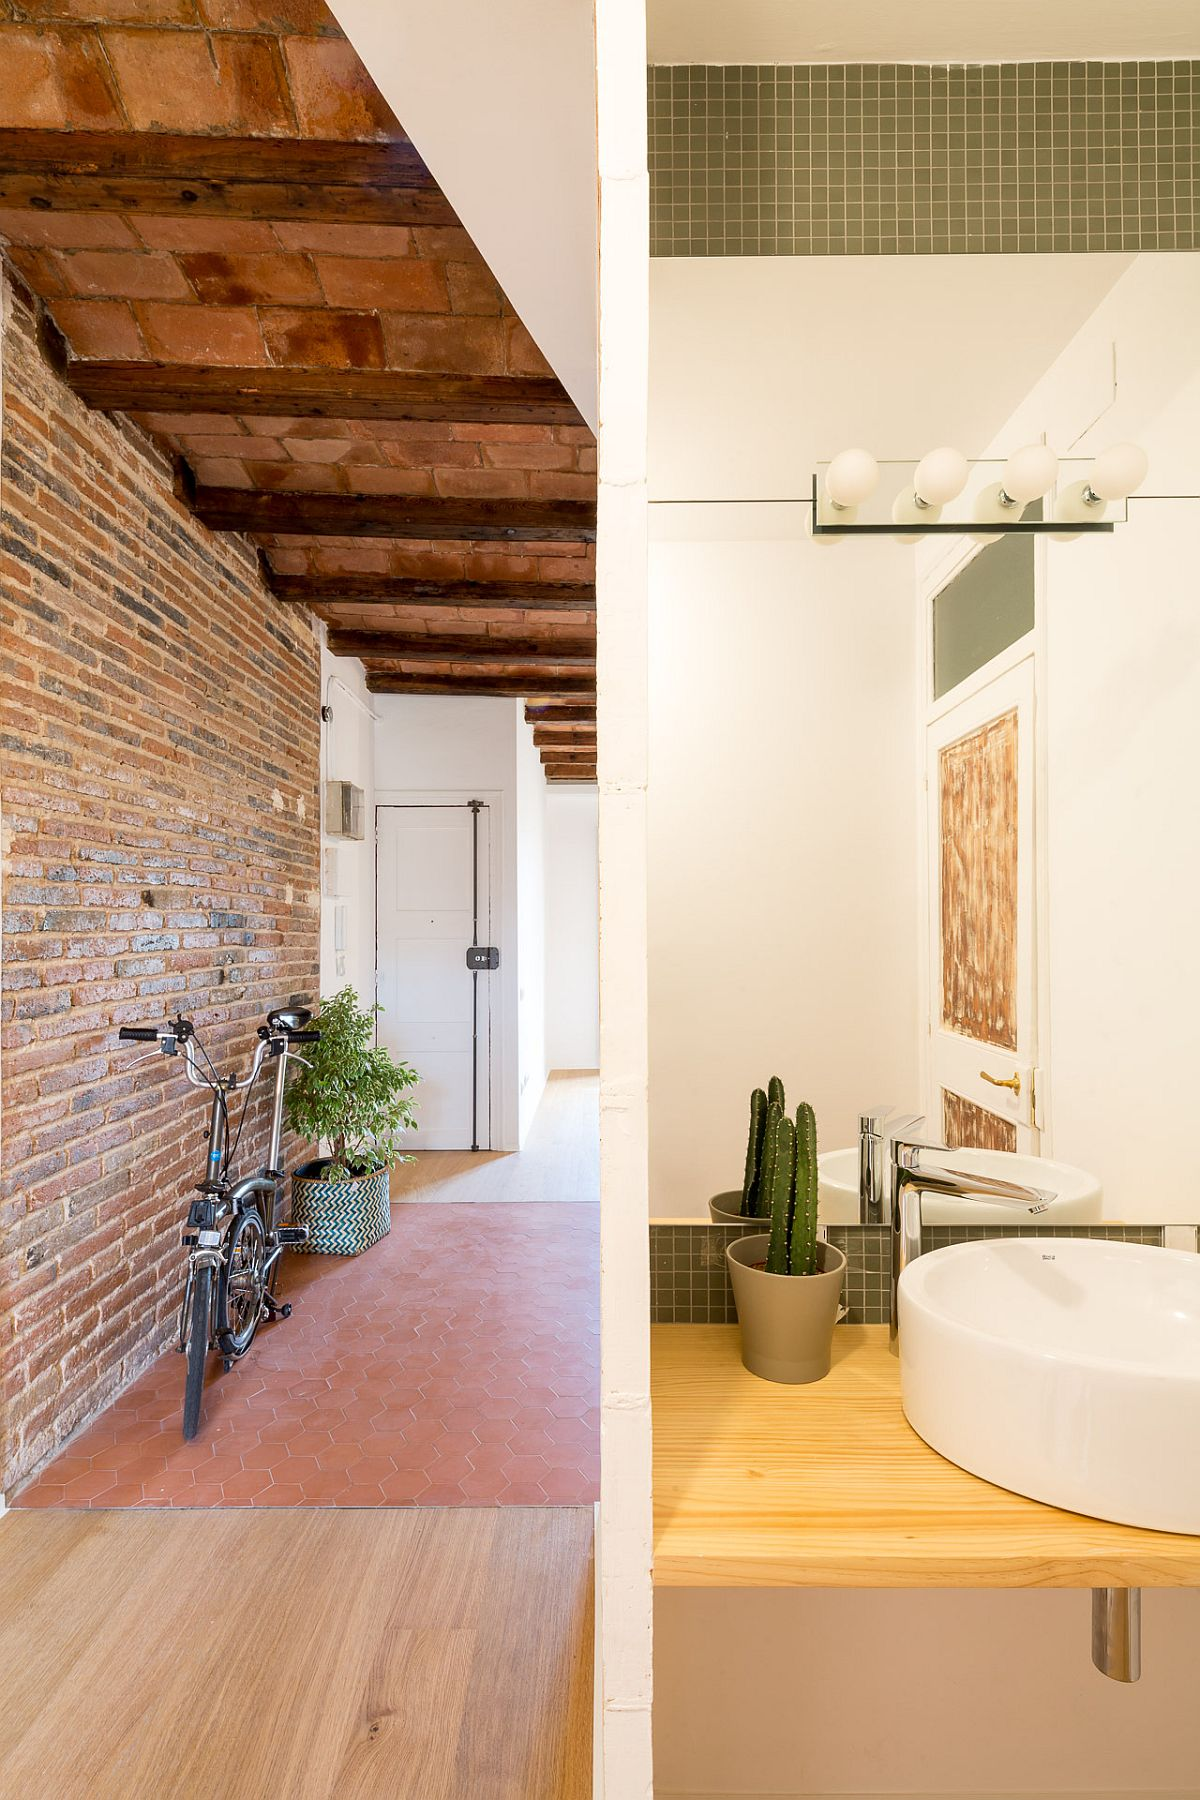 Transforming small Barcelona apartment with limited space